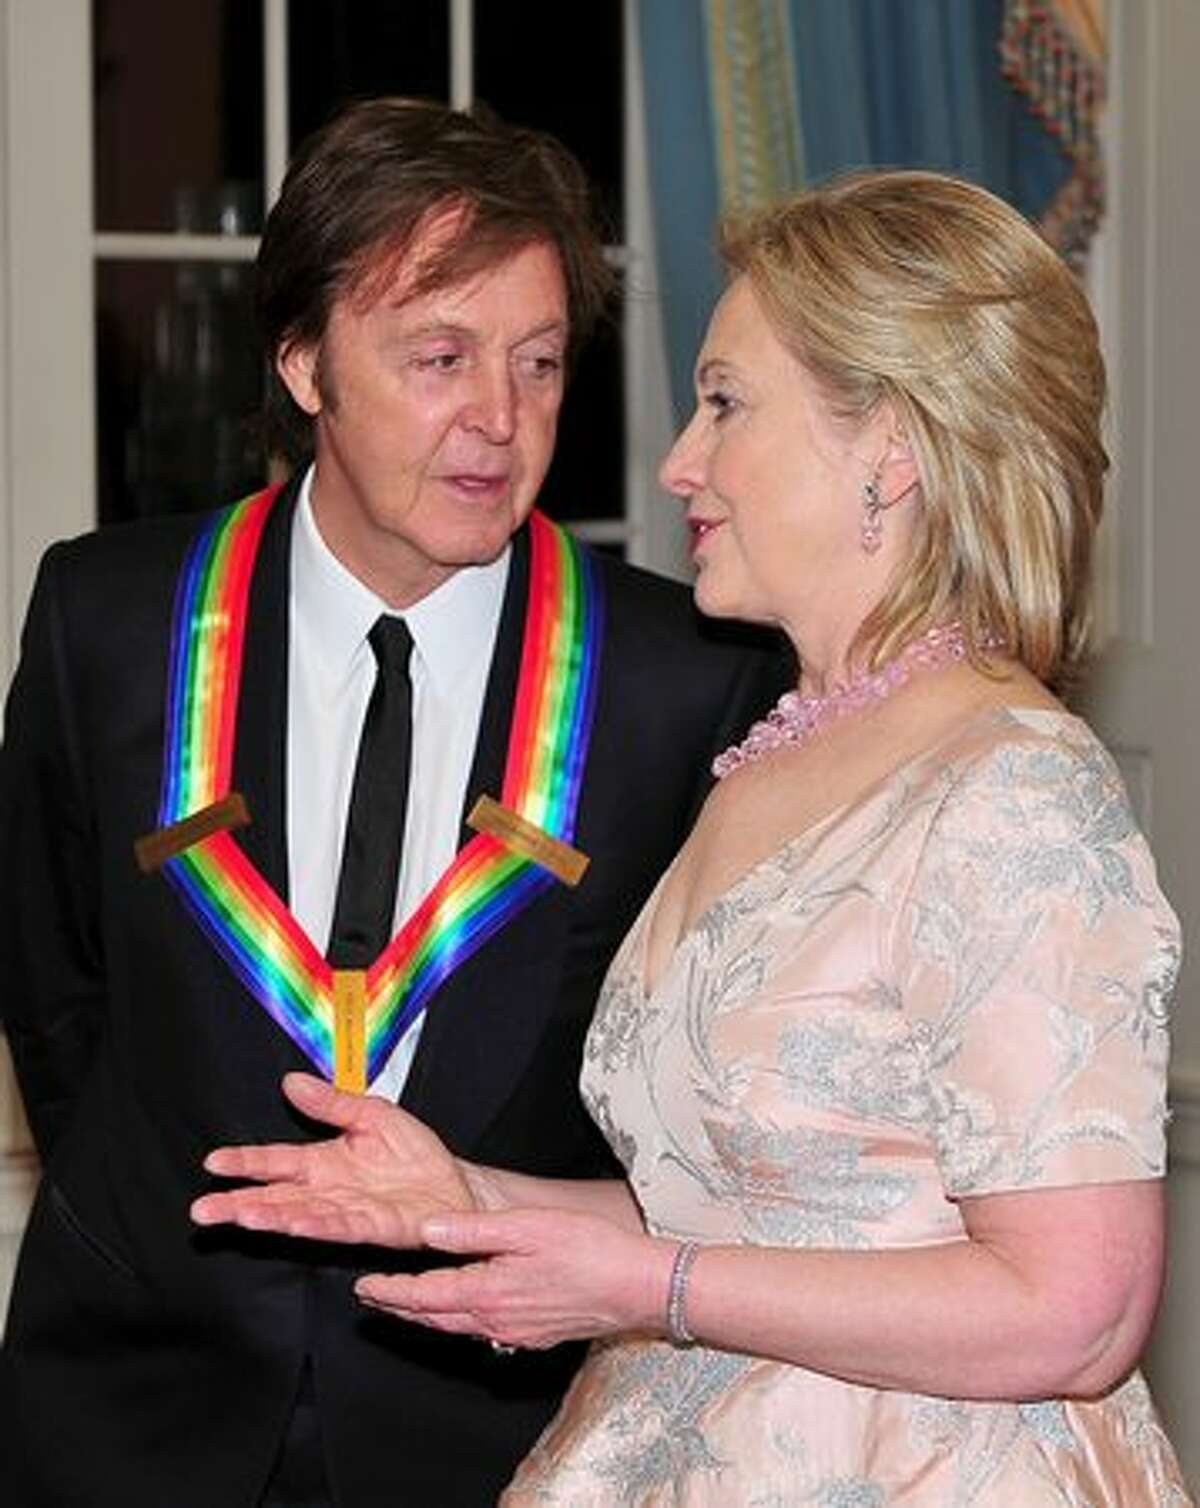 Sir Paul McCartney, one of the 2010 Kennedy Center honorees, shares some thoughts with United States Secretary of State Hillary Rodham Clinton as they prepare to pose for their formal class photo following the formal Artist's Dinner at the United States Department of State in Washington, D.C.